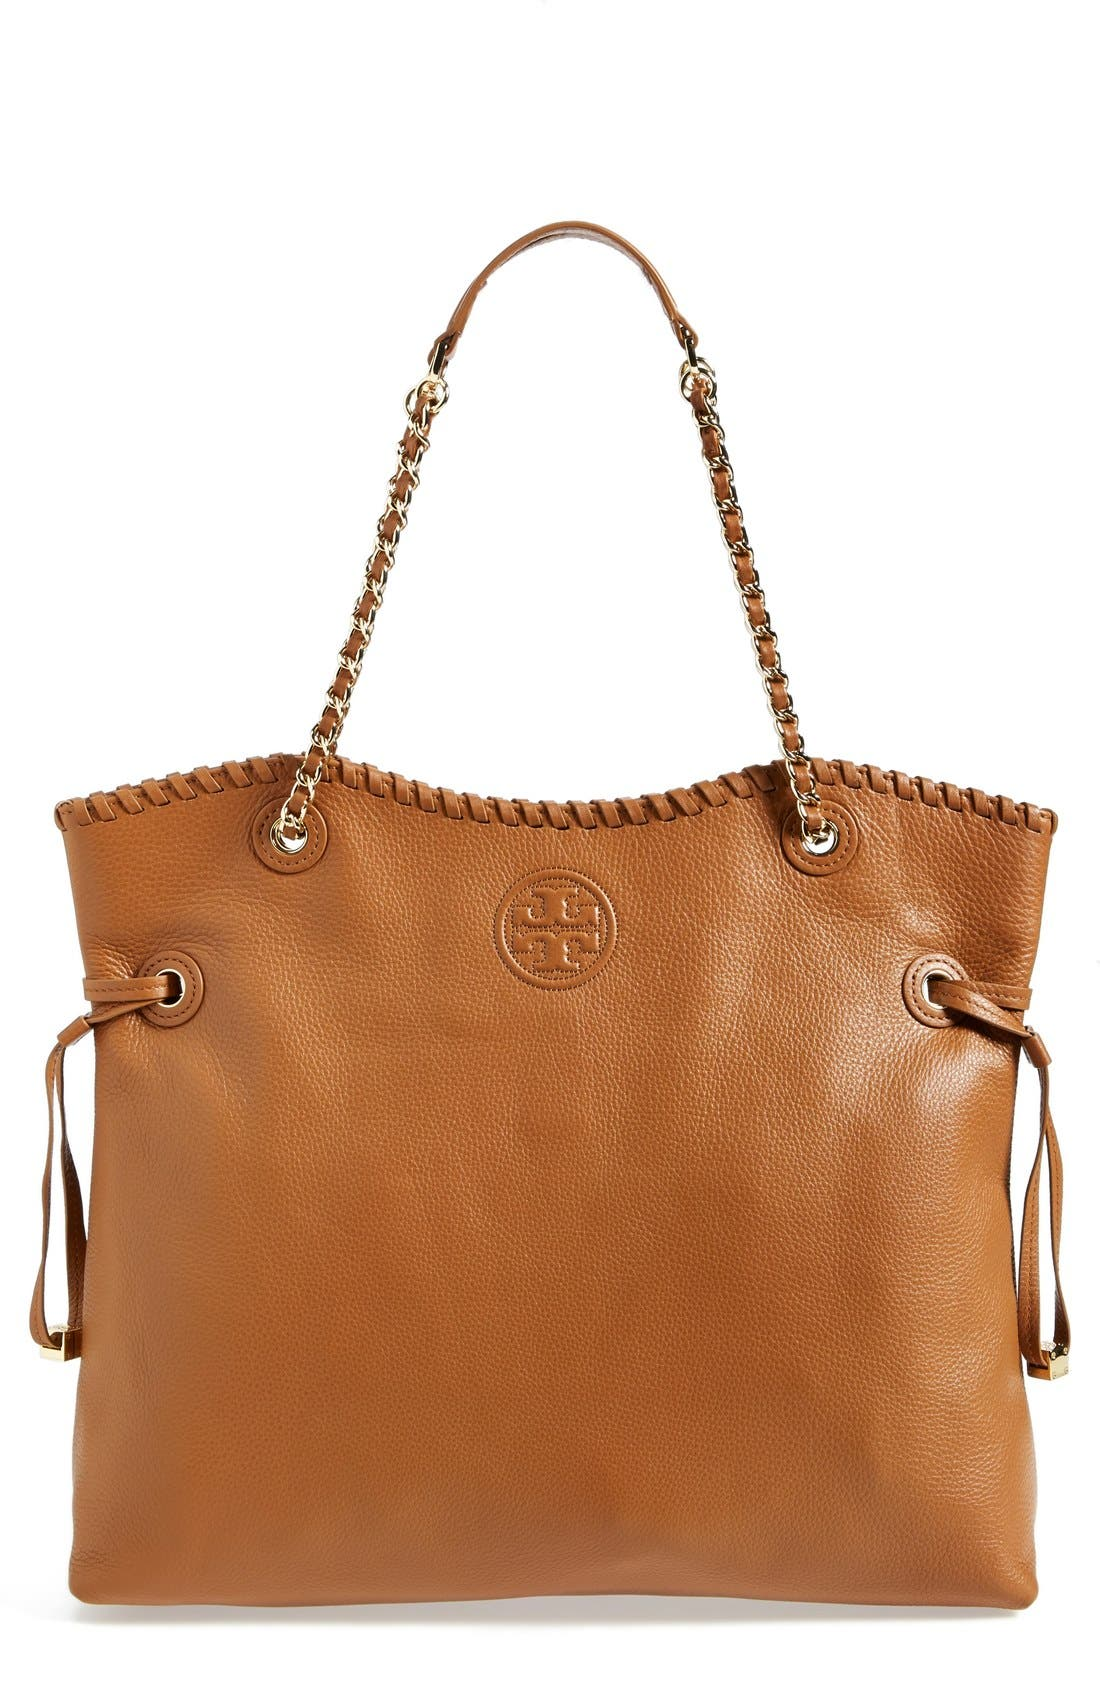 Alternate Image 1 Selected - Tory Burch 'Marion' Slouchy Tote